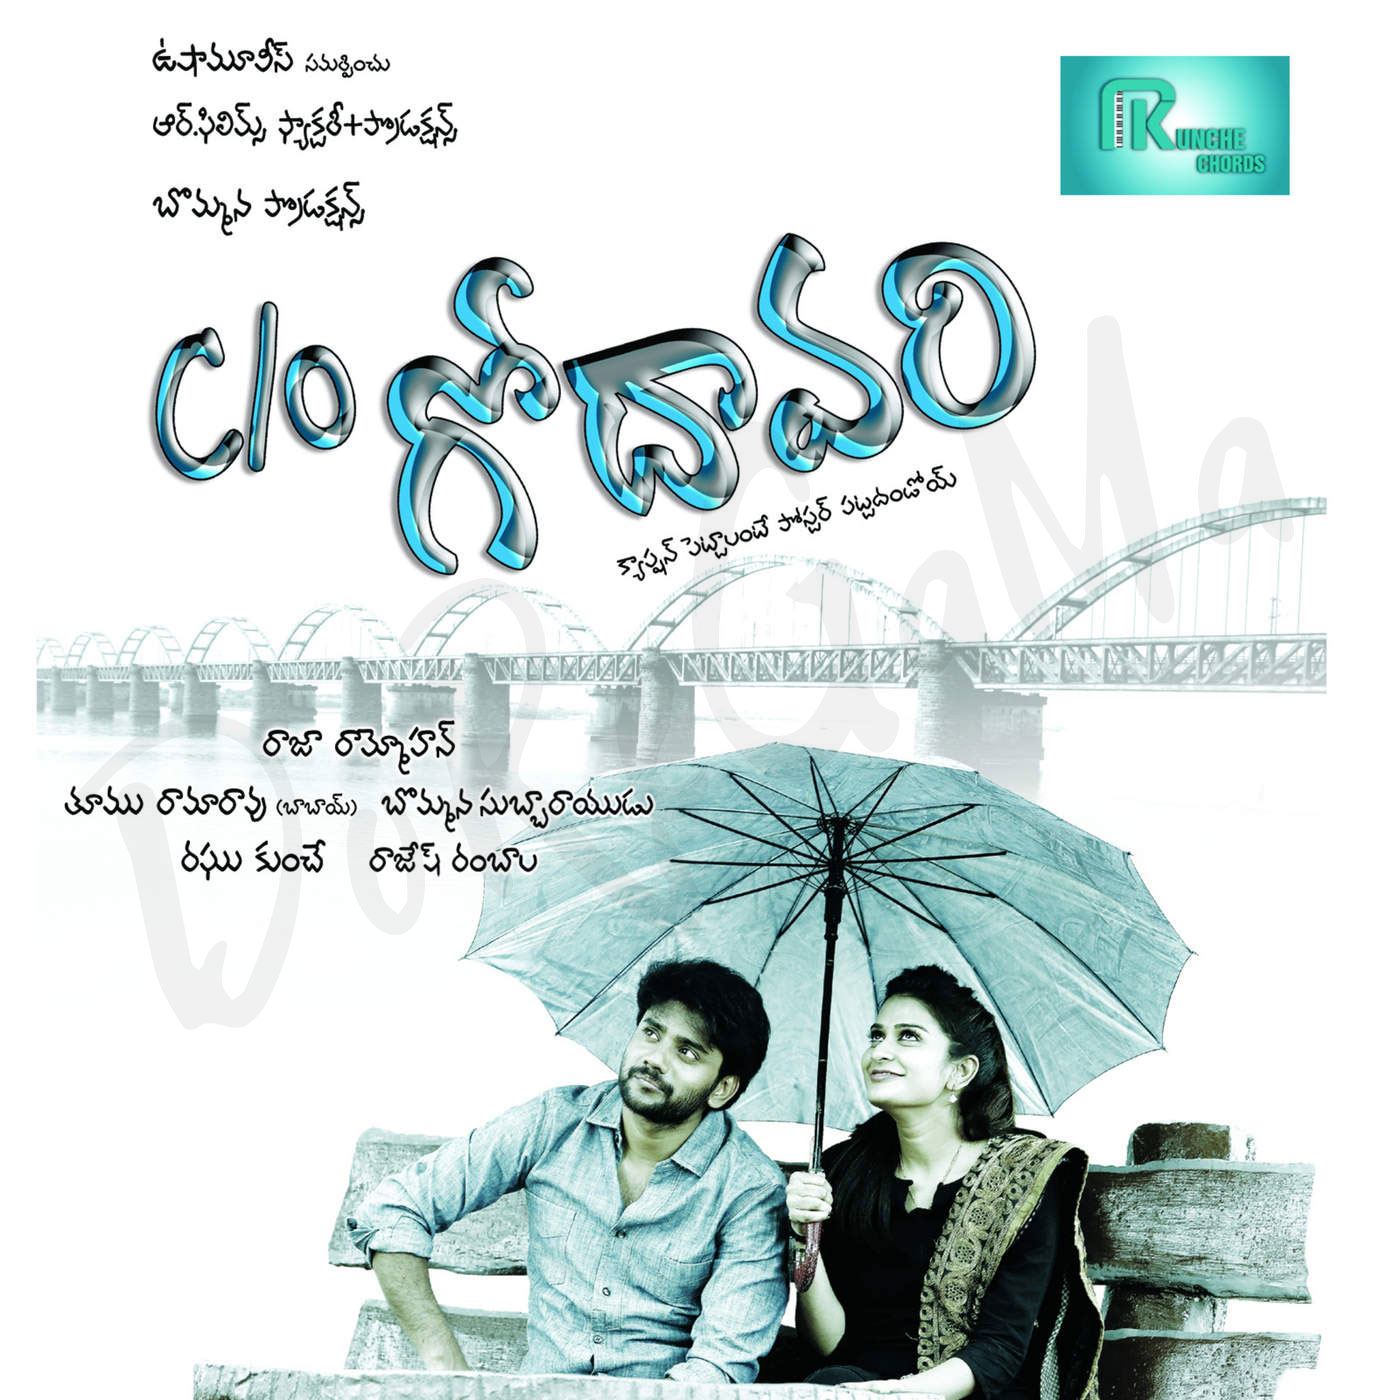 CO-Godavari-2016-Original-CD-FRont-Cover-Poster-wallaperHD